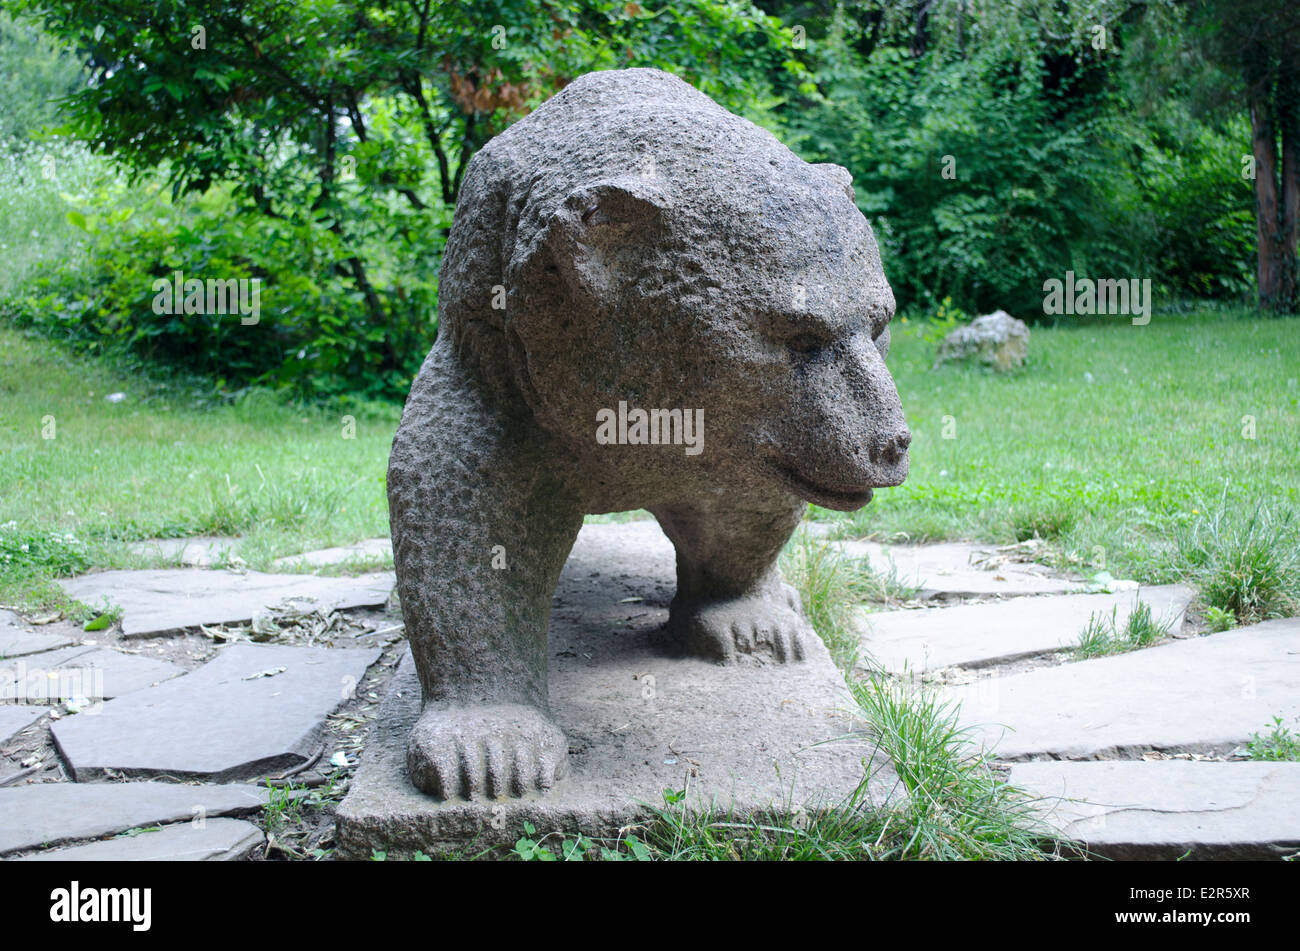 Granite sculpture in the form of a bear in Rousse Bulgaria Stock Photo